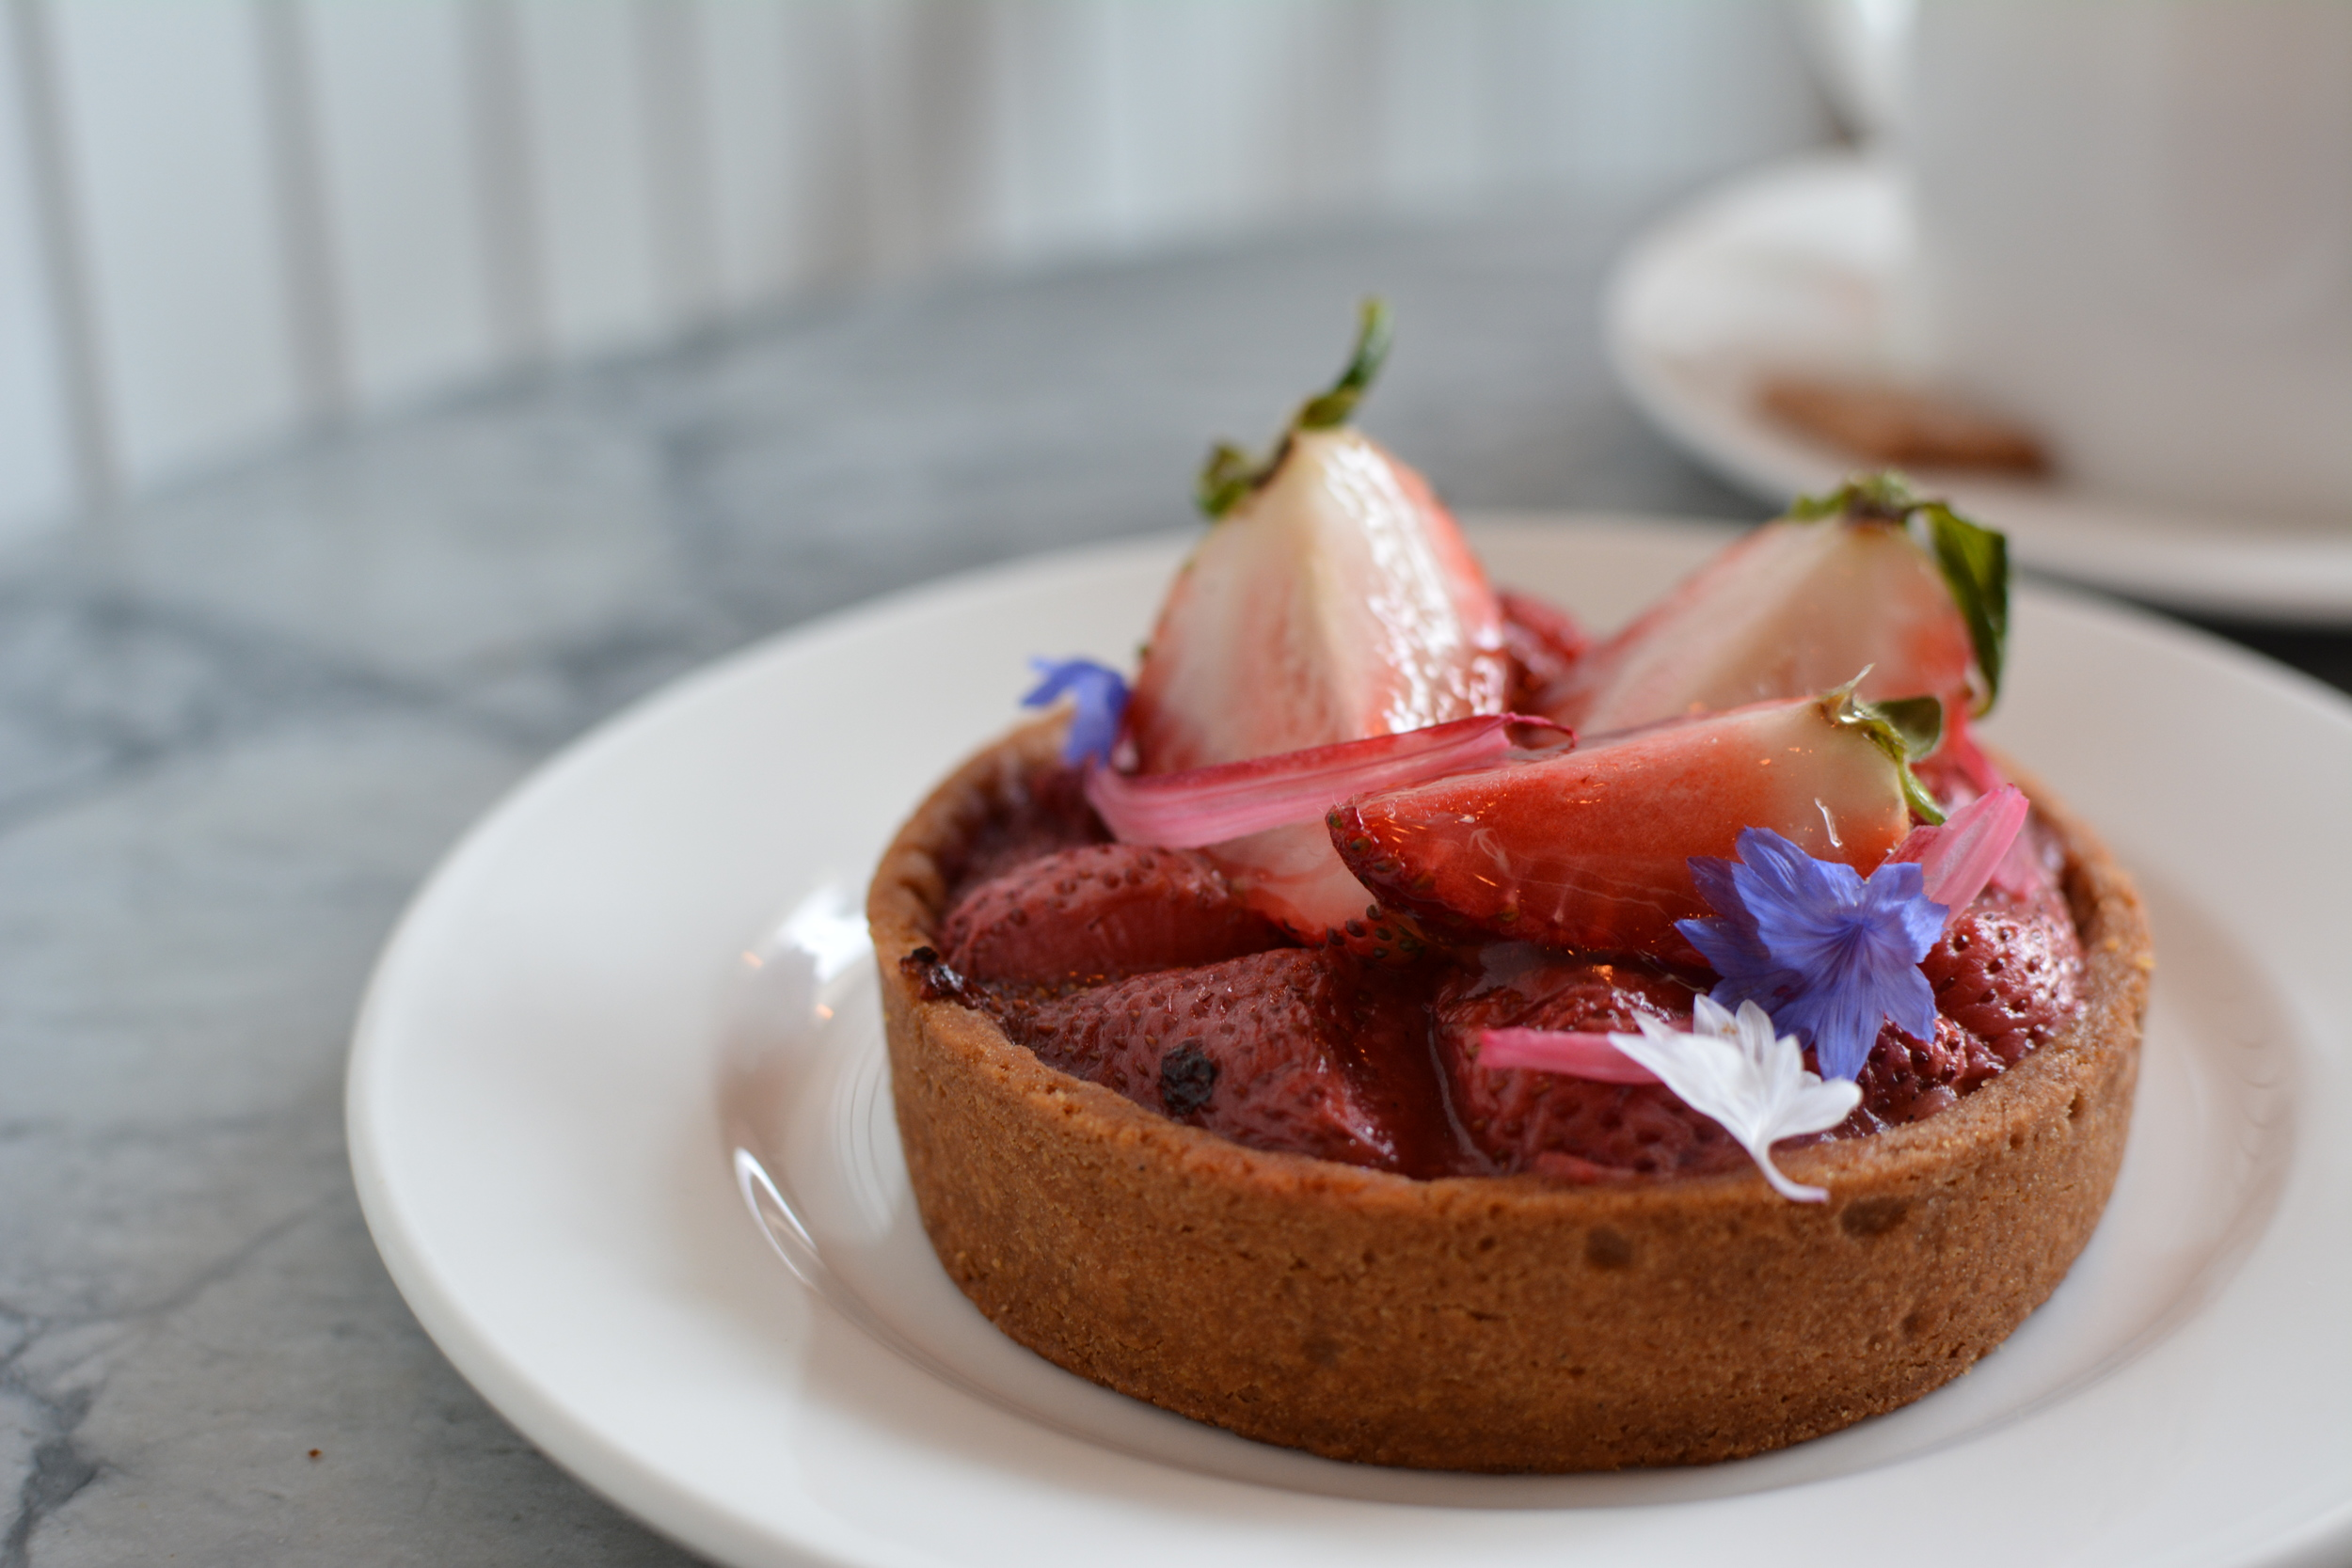 Strawberry Rhubarb tart at Beaucoup Bakery.